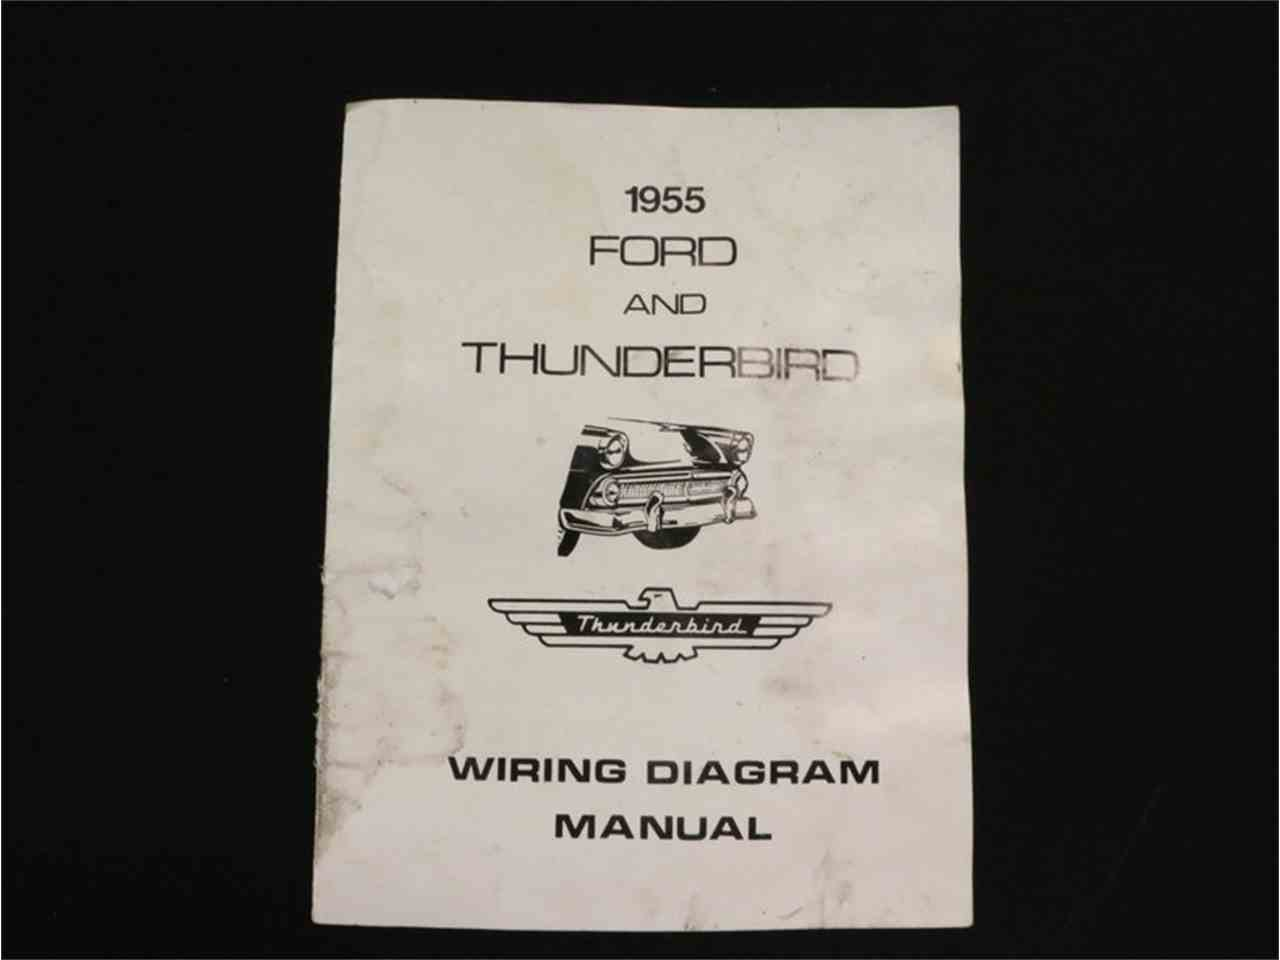 Wiring diagram for 1955 crown vic wiring diagrams schematics 1955 ford crown victoria for sale classiccars com cc 1050835 1996 crown victoria wiring diagram fairmont cheapraybanclubmaster Image collections